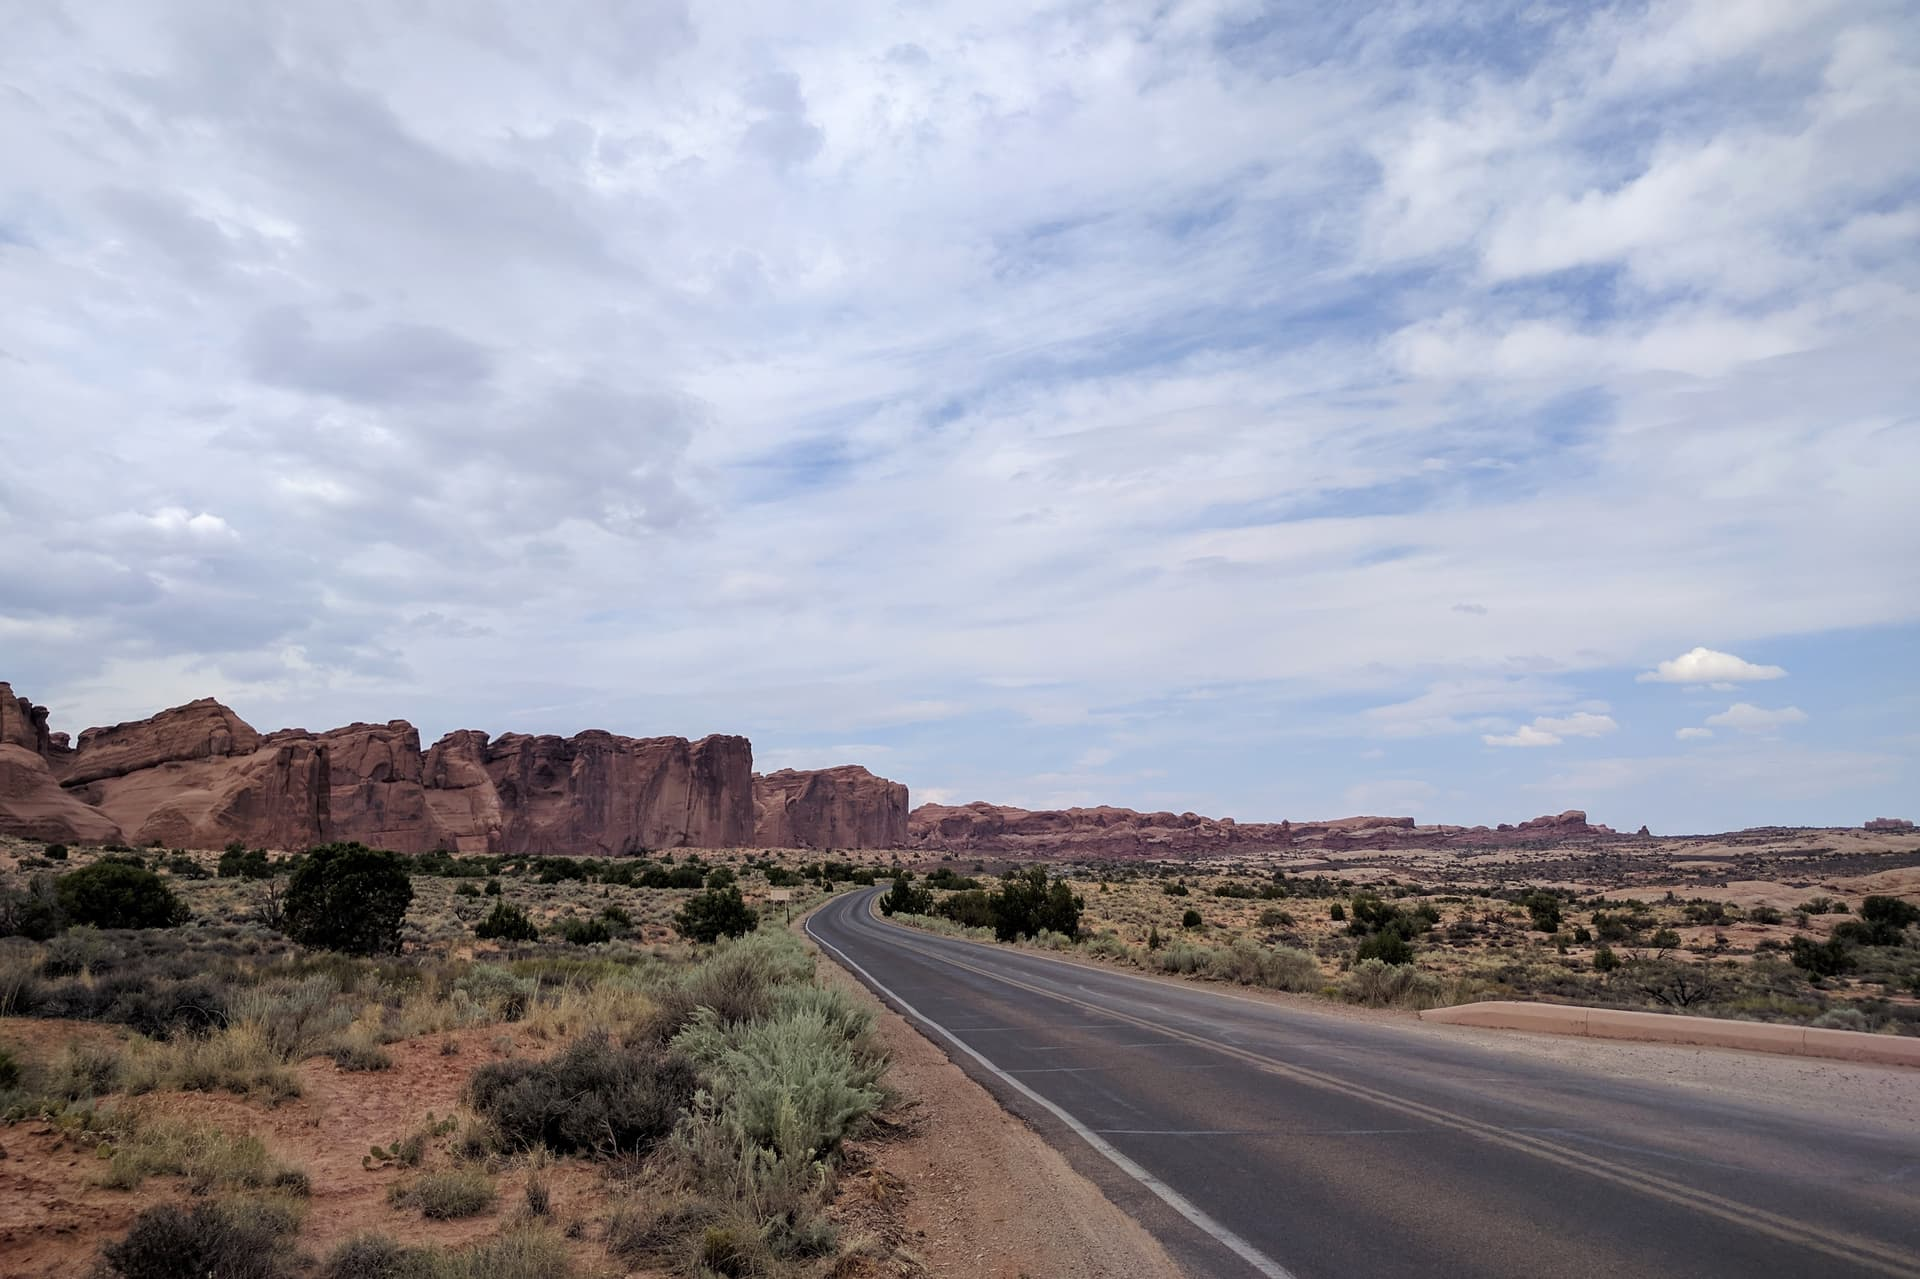 Looking north along the main road into Arches National Park. To the road's left, the undulating wall of a mesa made of red sandstone stretches into the distance.